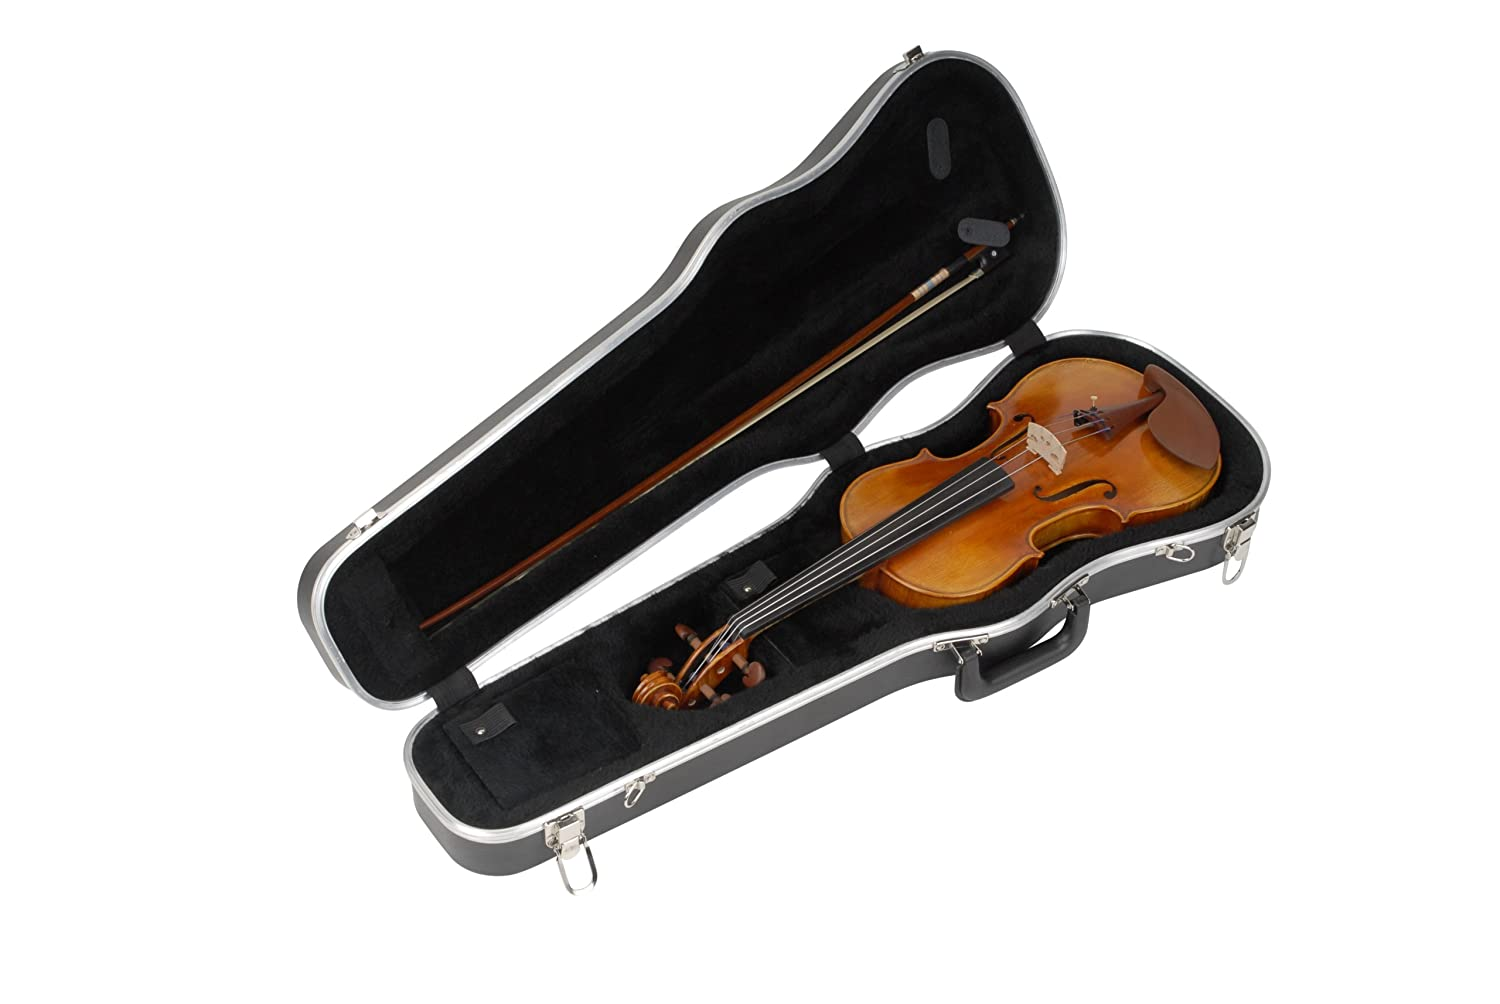 Top 17 Best Violin Cases (2020 Reviews & Buying Guide) 12